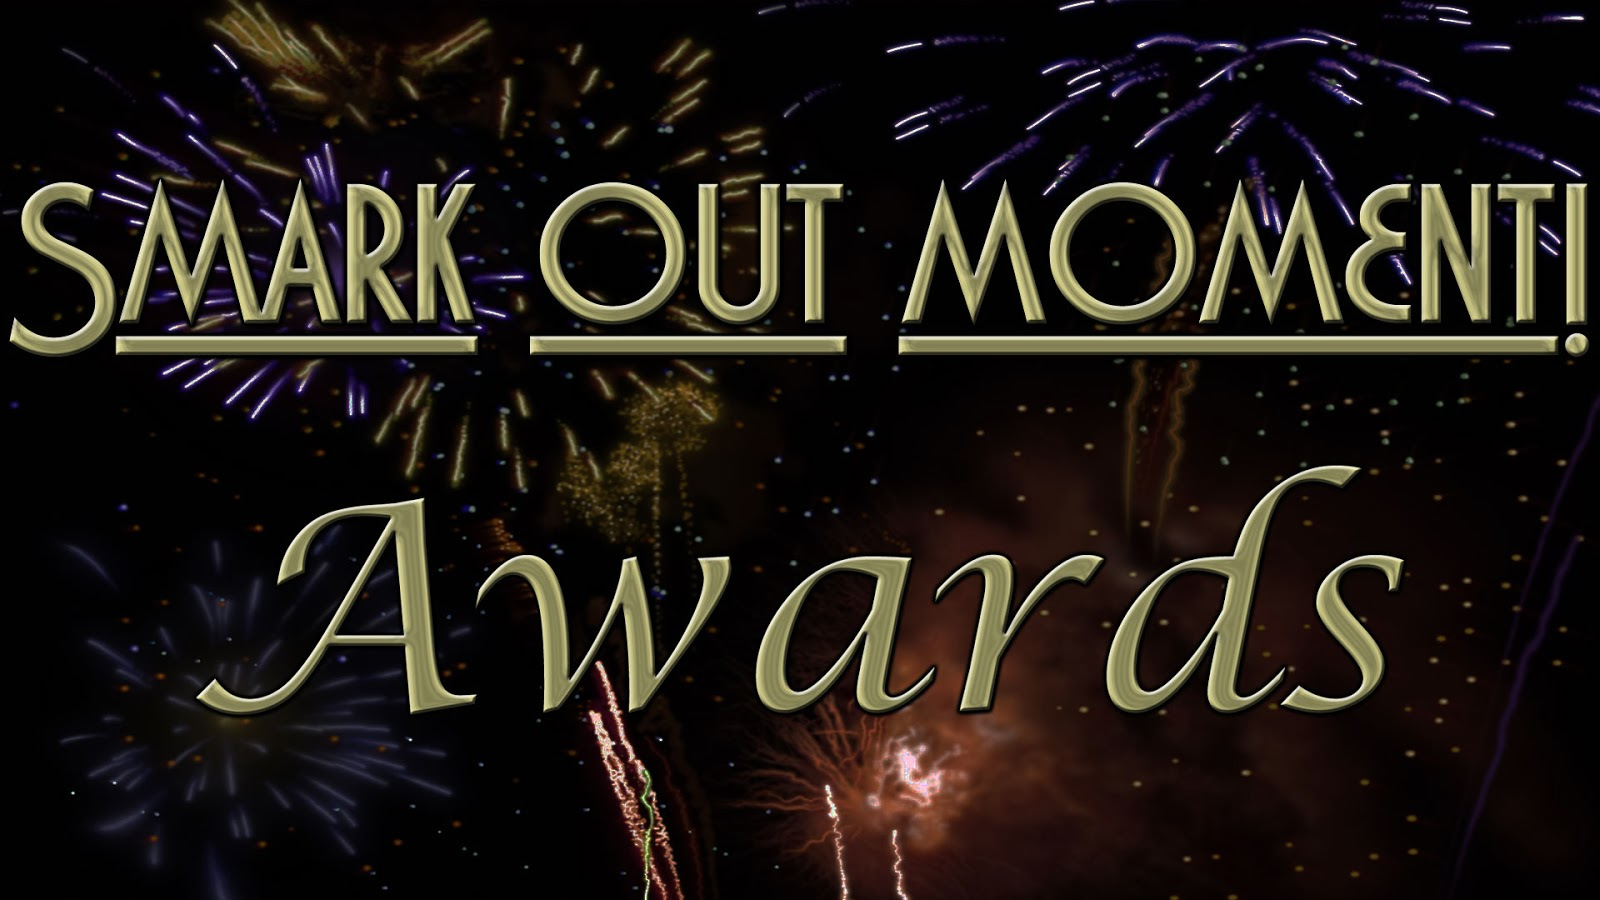 Best and Worst of WWE Awards 2013 List from Smark Out Moment